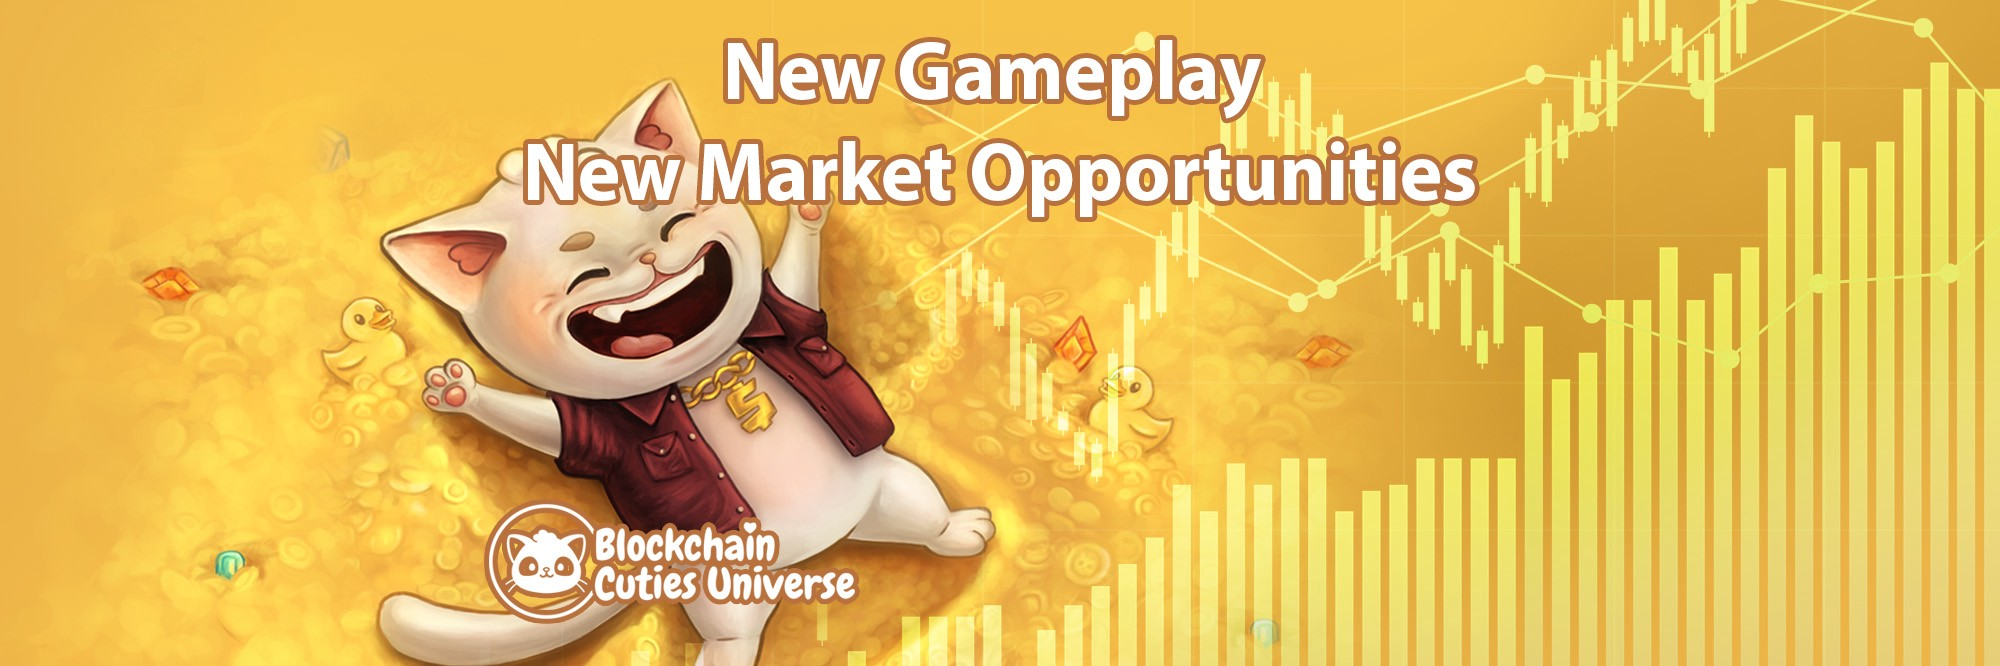 Gameplay Update: New Adventures, New Treasures, and New Strategy Challenge